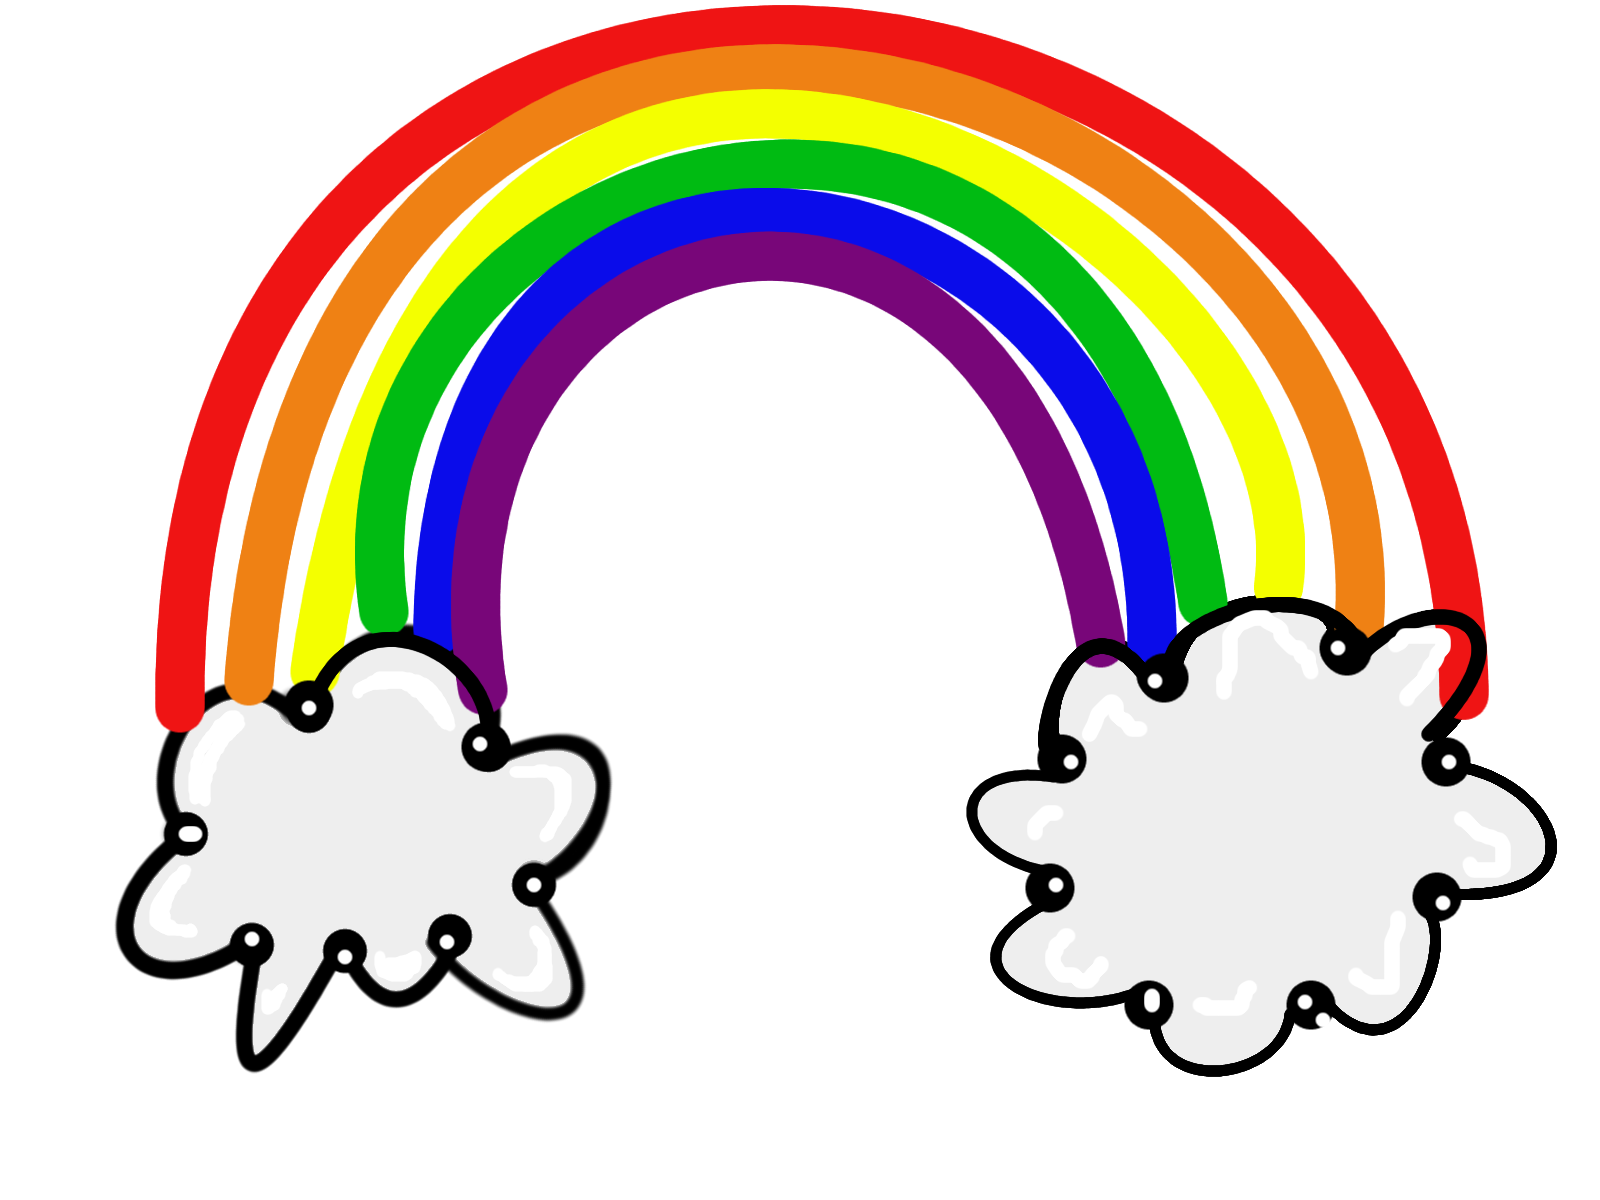 7 colored clipart rainbow free download Free Color Rainbow Cliparts, Download Free Clip Art, Free Clip Art ... free download